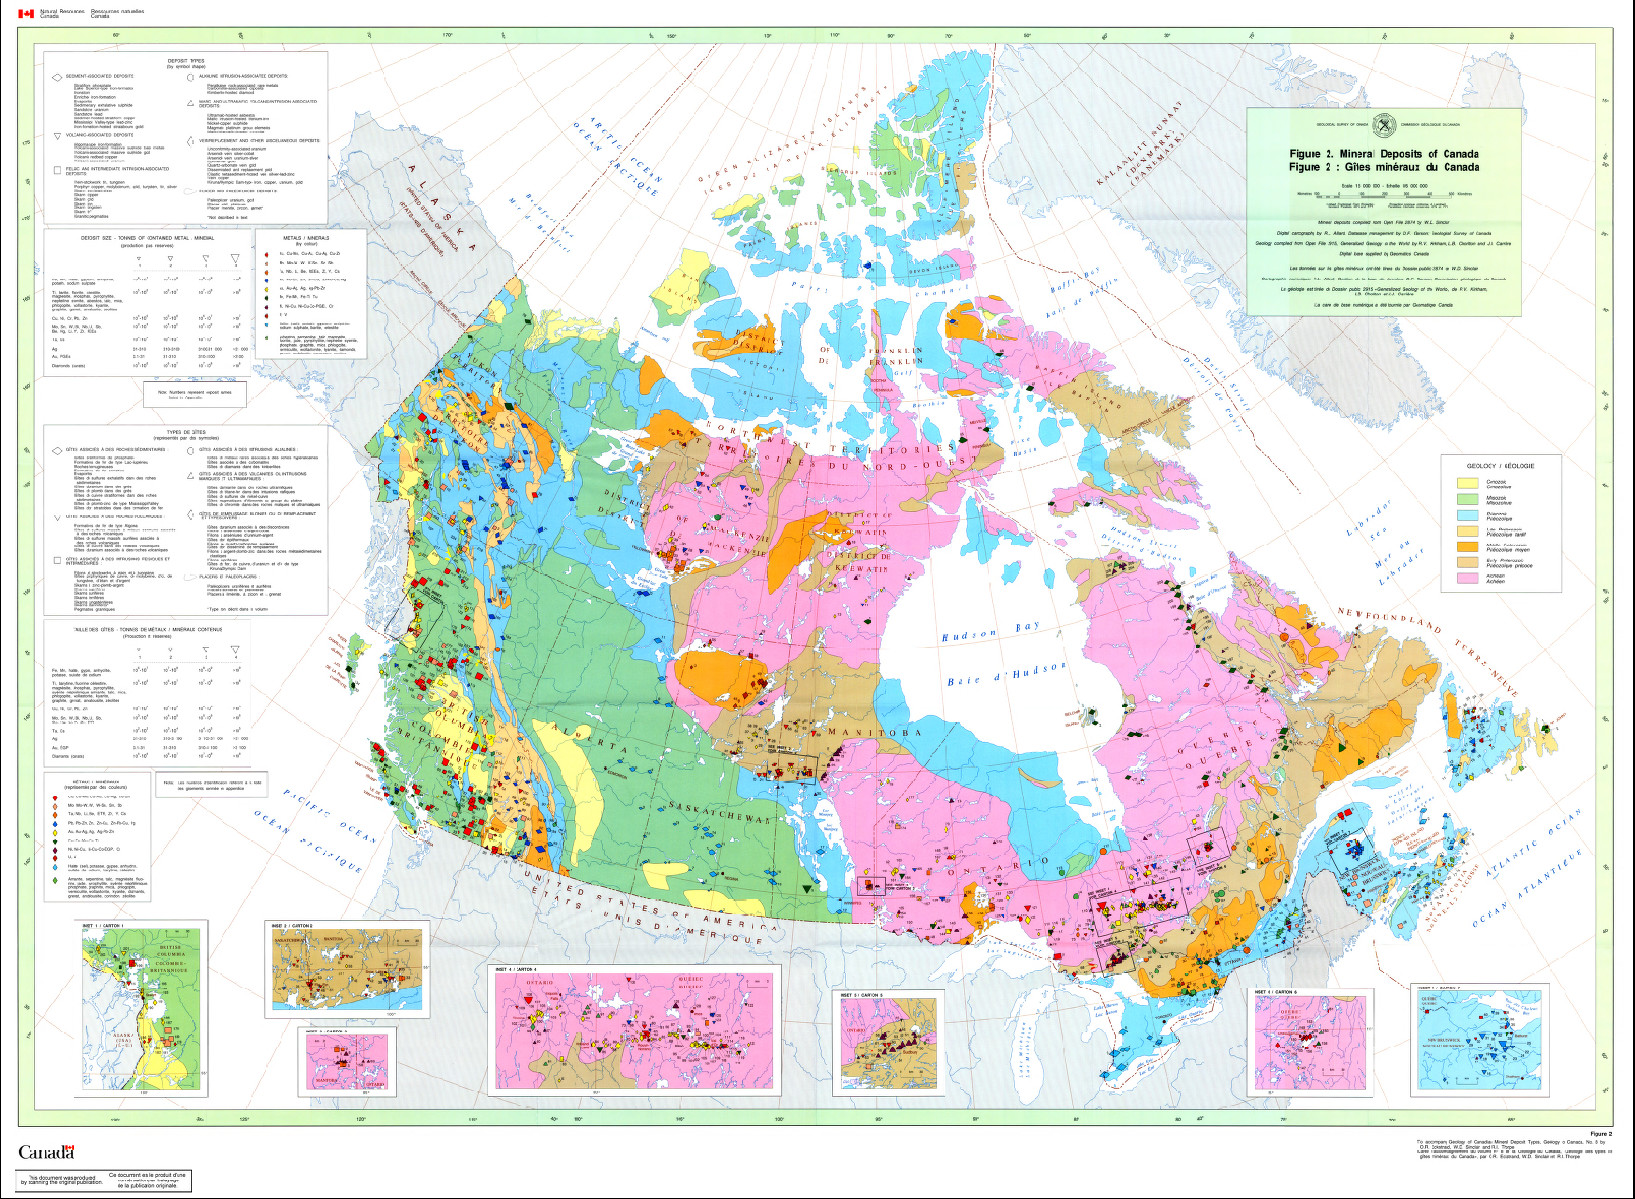 130  Canadian Mineral Deposits (1984) - Science gc ca